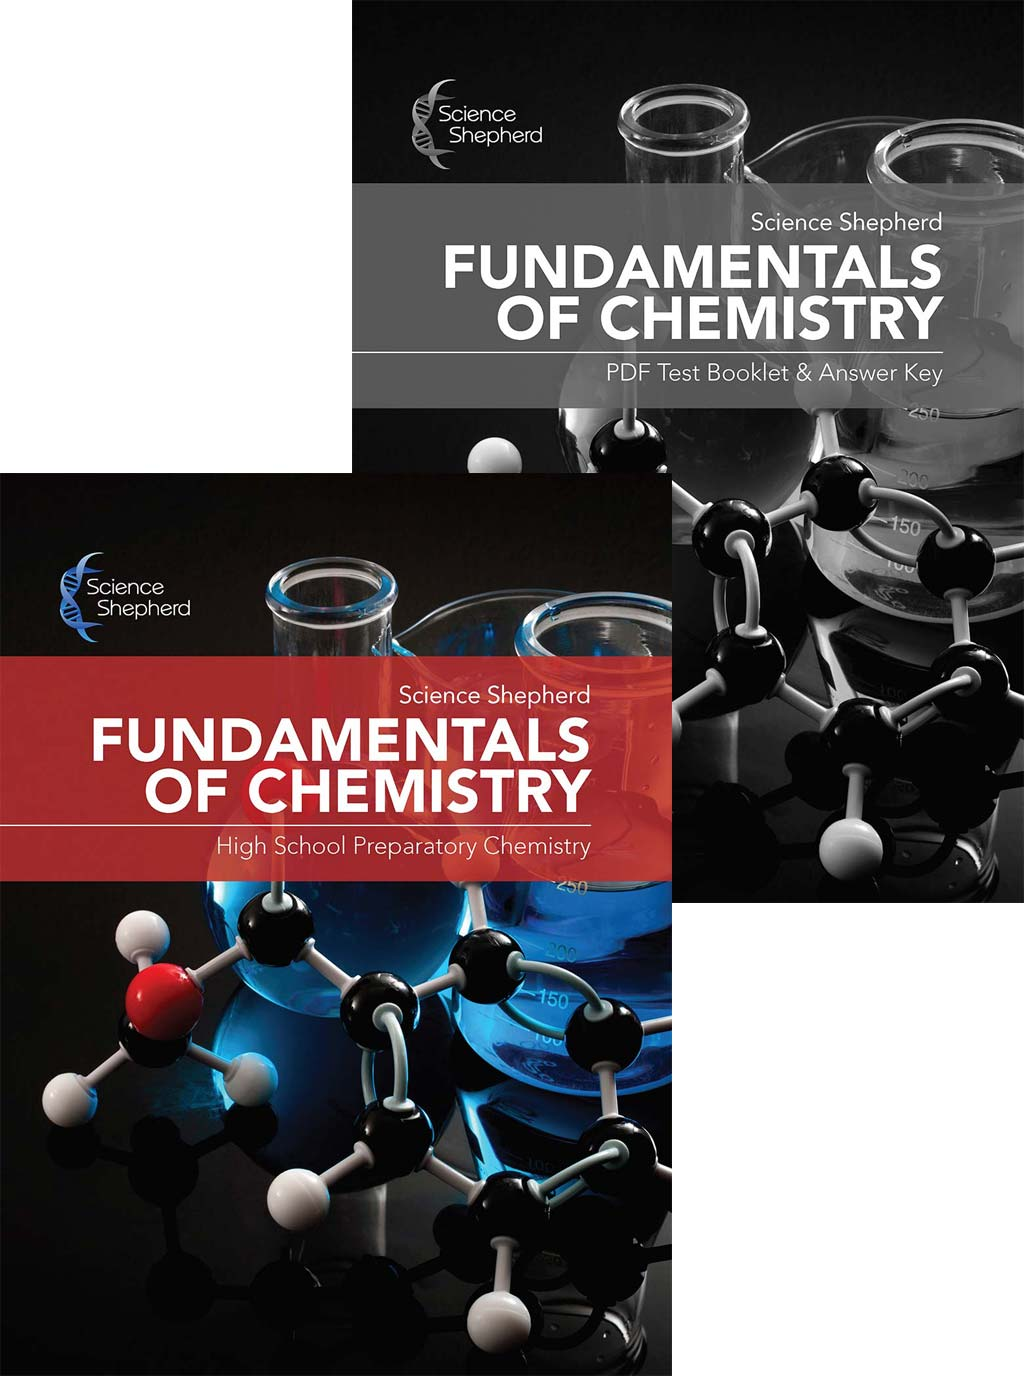 Fundamentals of Chemistry Bundle